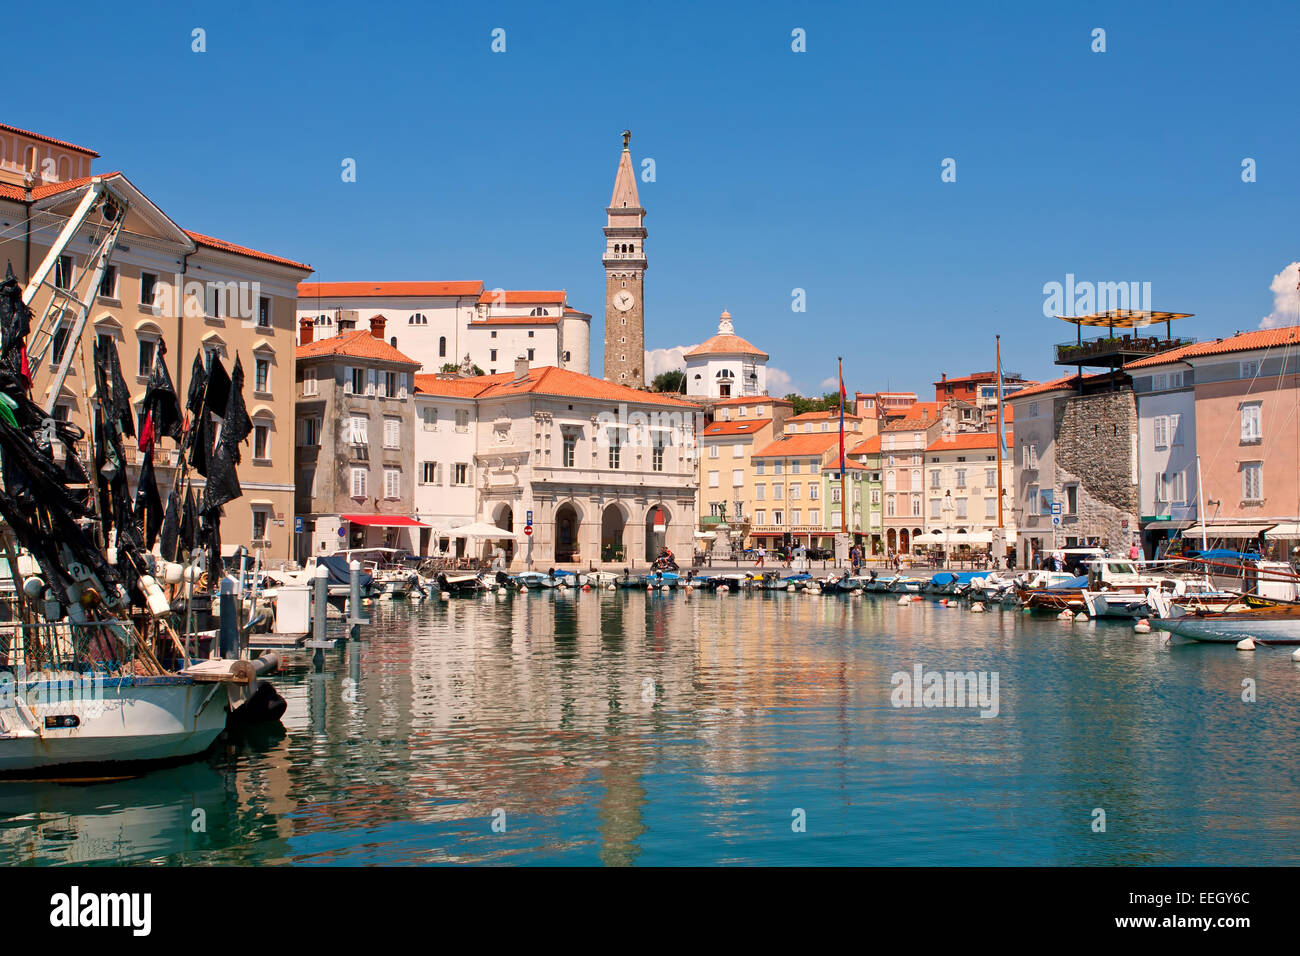 centre of city Piran - Slovenia - Stock Image